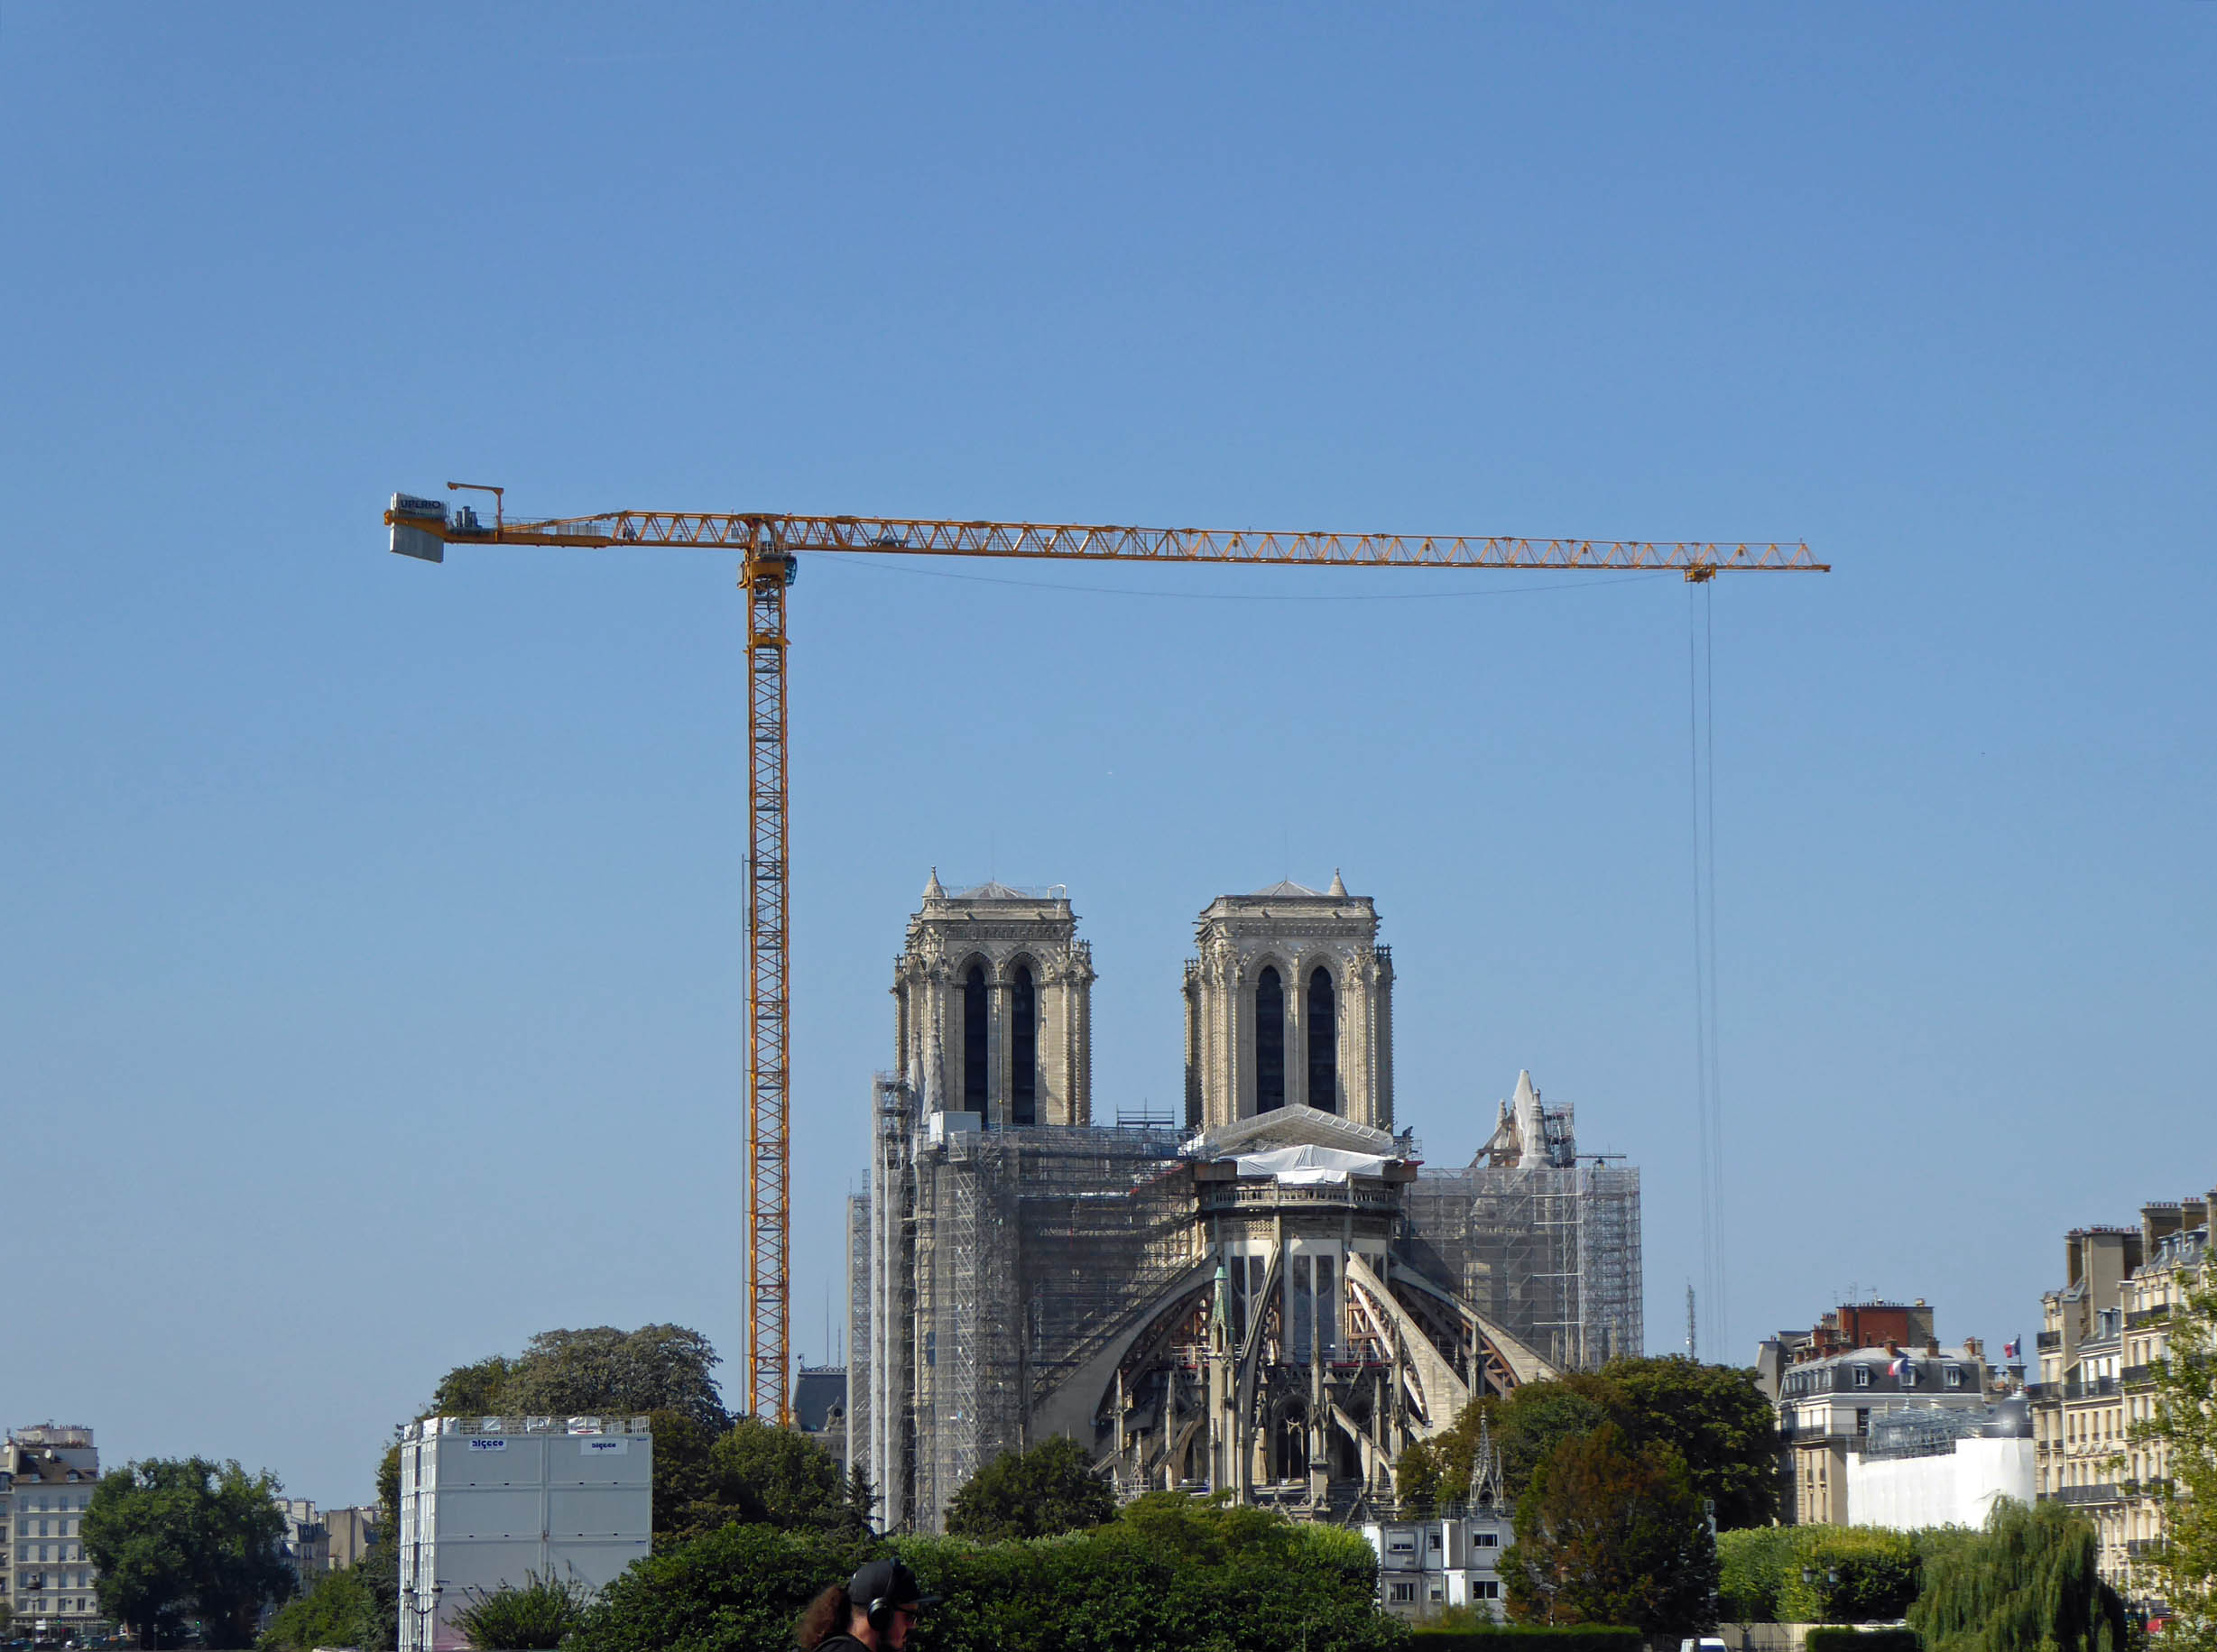 Cathedral with scaffolding and large crane